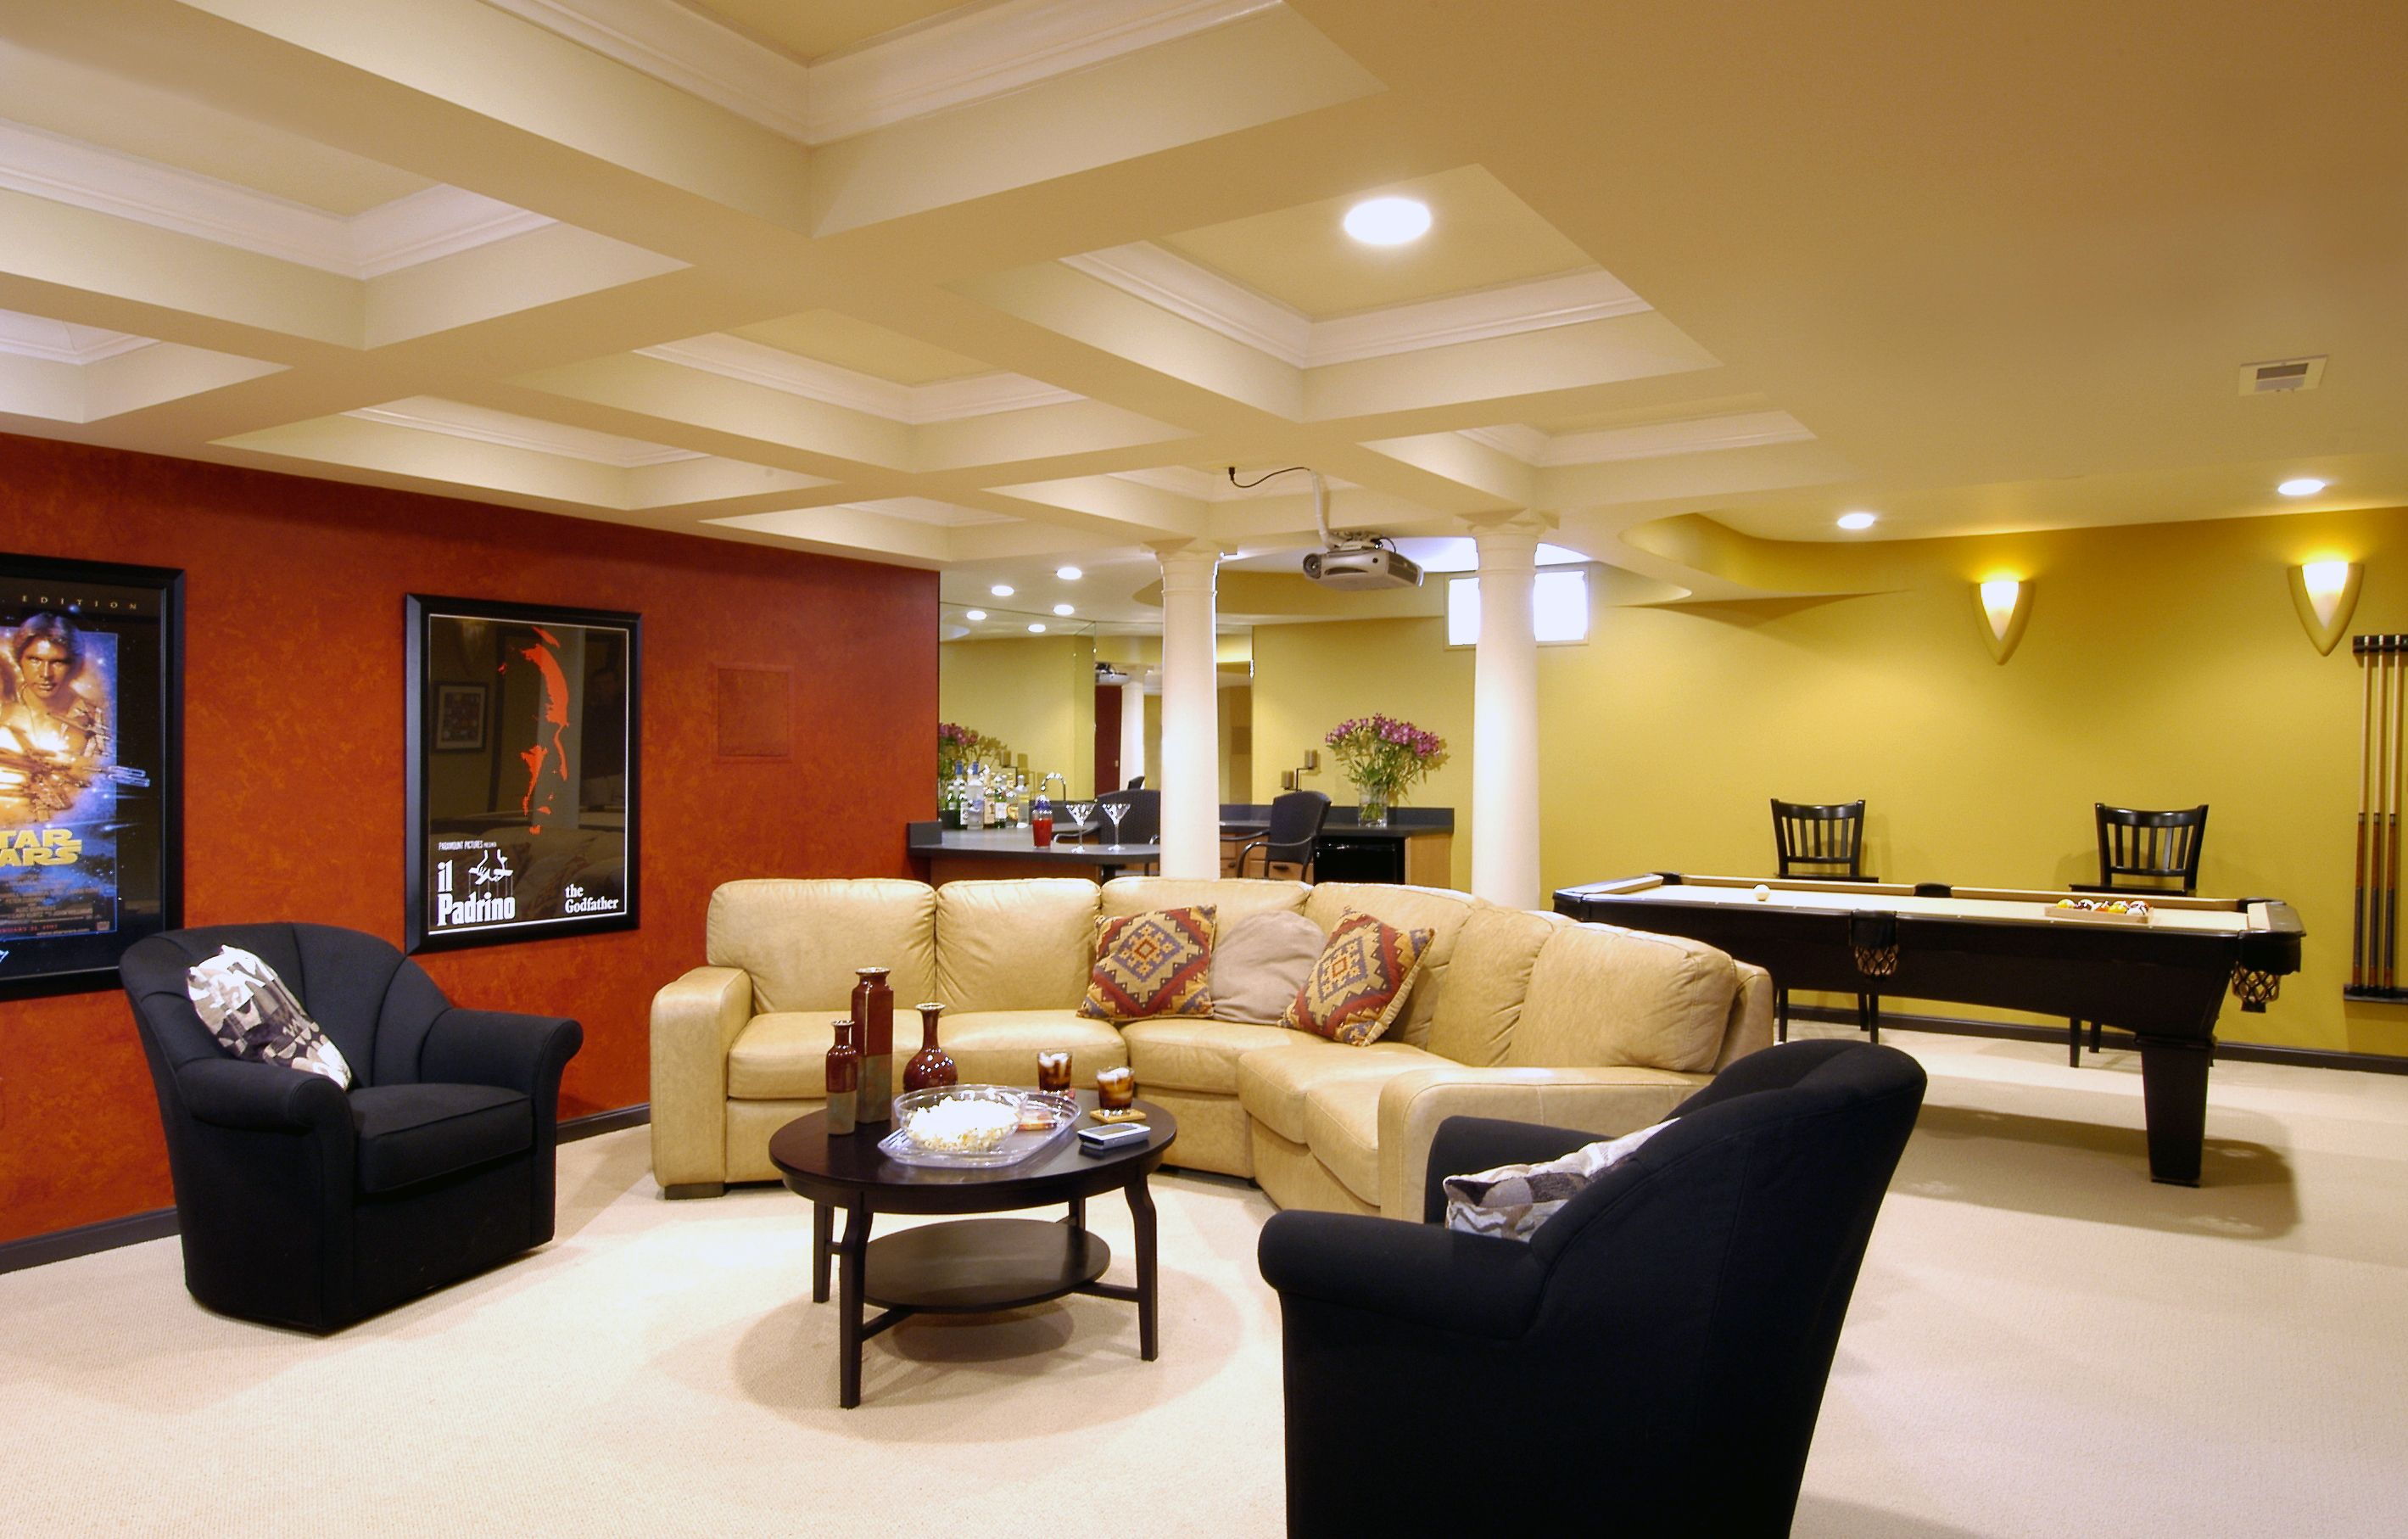 ideas space luury along furniture saving with decoration interior plus on basement finished home site picture